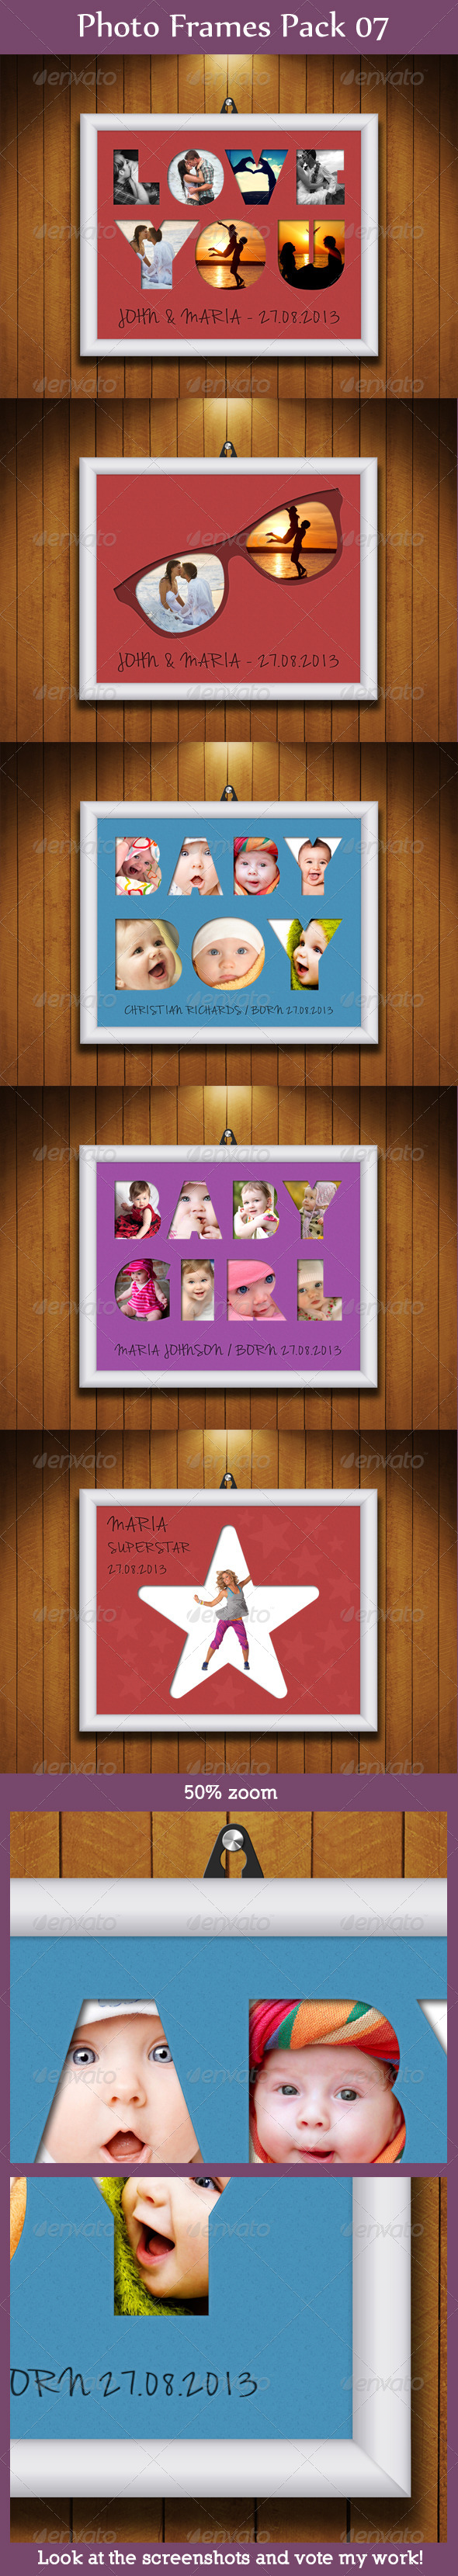 Photo Frames Pack 07 - Artistic Photo Templates